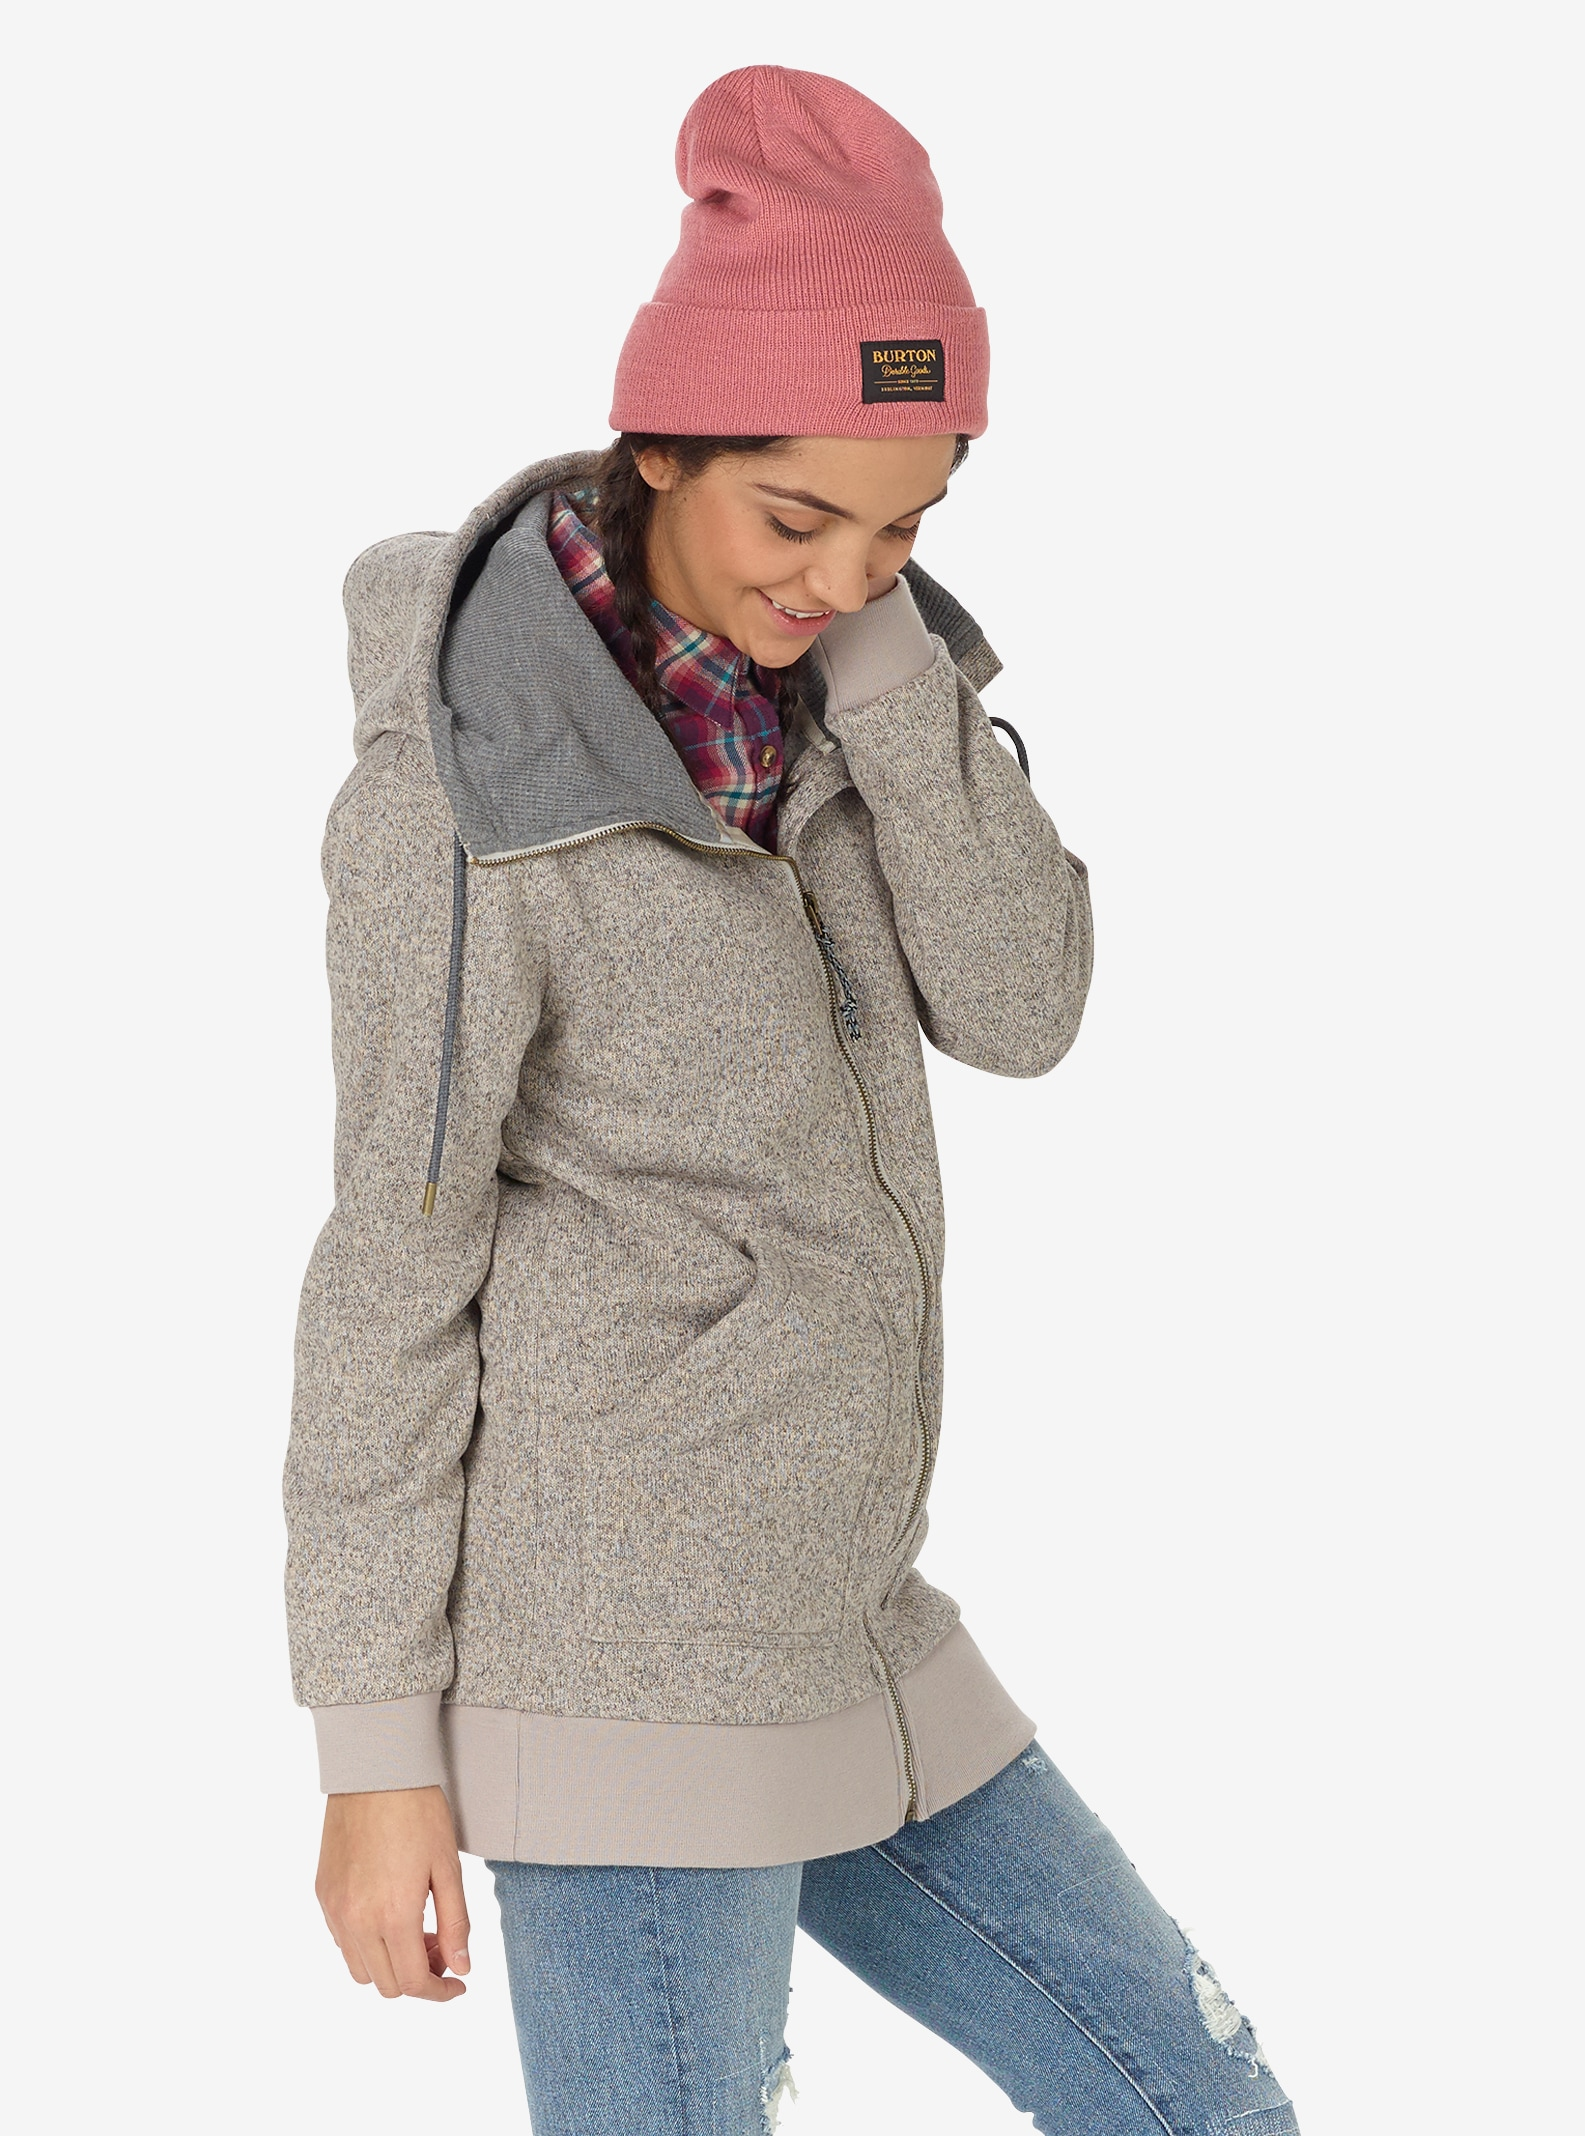 Women's Burton Minxy Fleece shown in Dove Heather